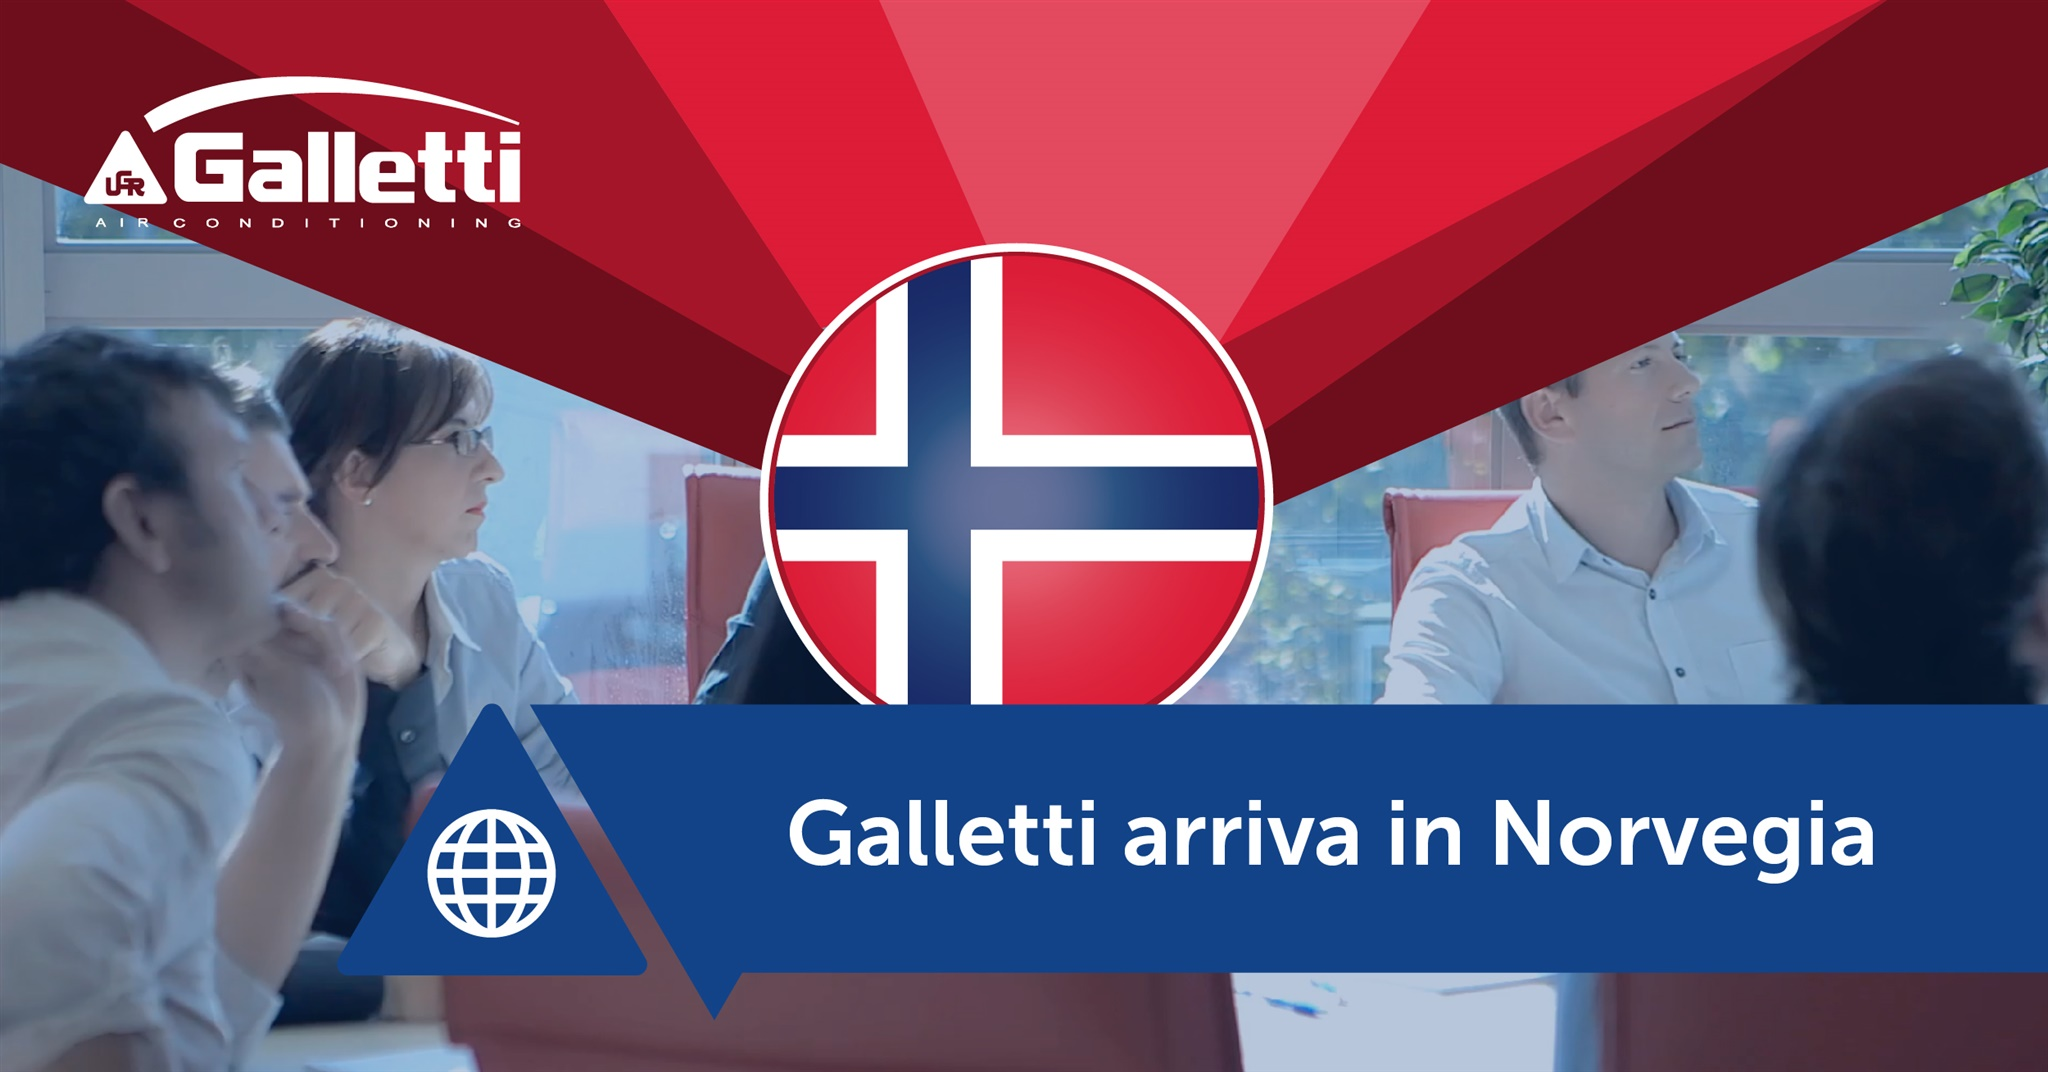 Filiale Galletti in Norvegia